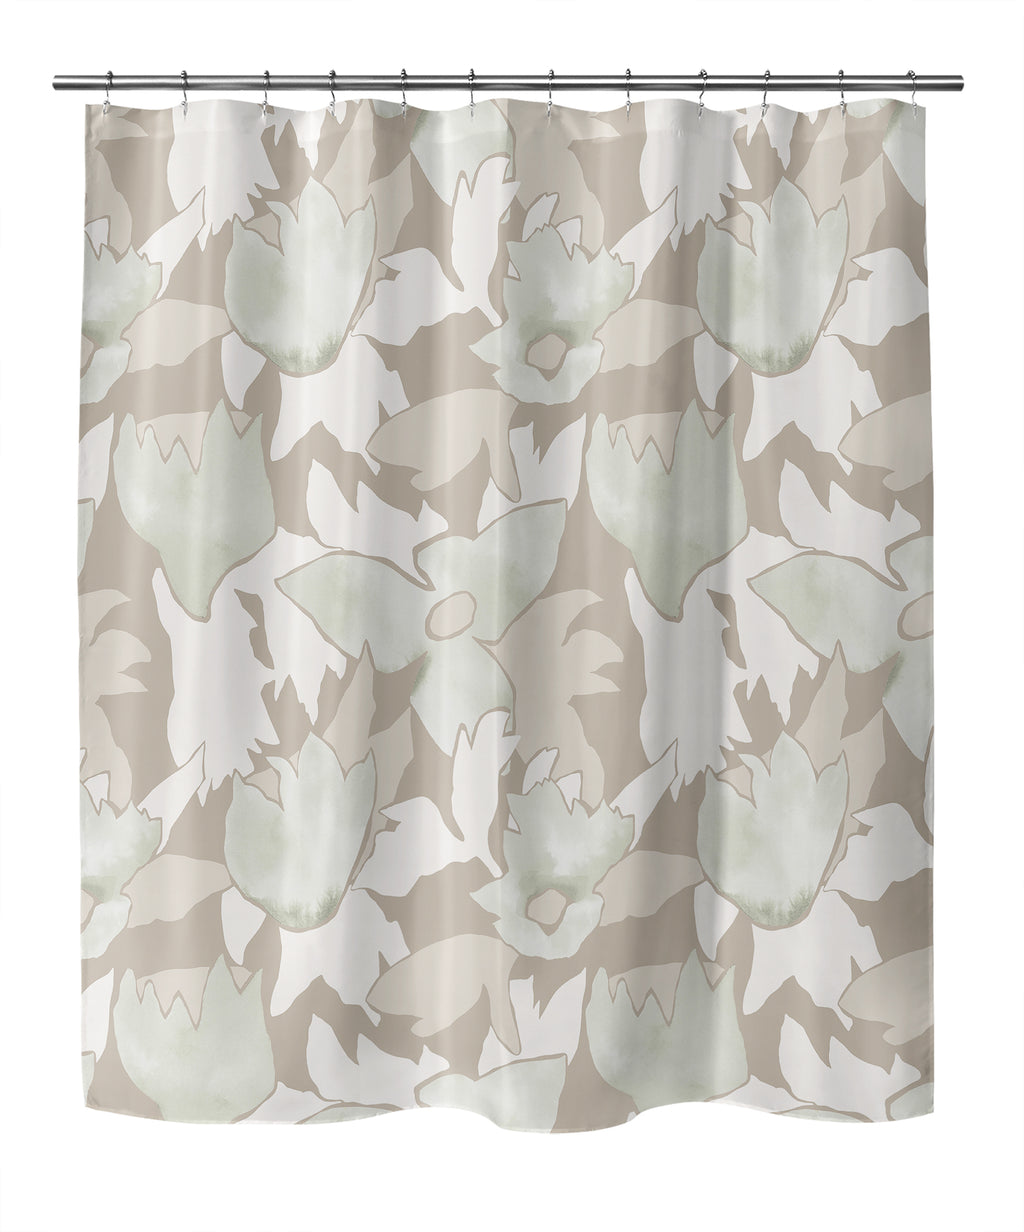 TRILLIUM BEIGE Shower Curtain By Becky Bailey